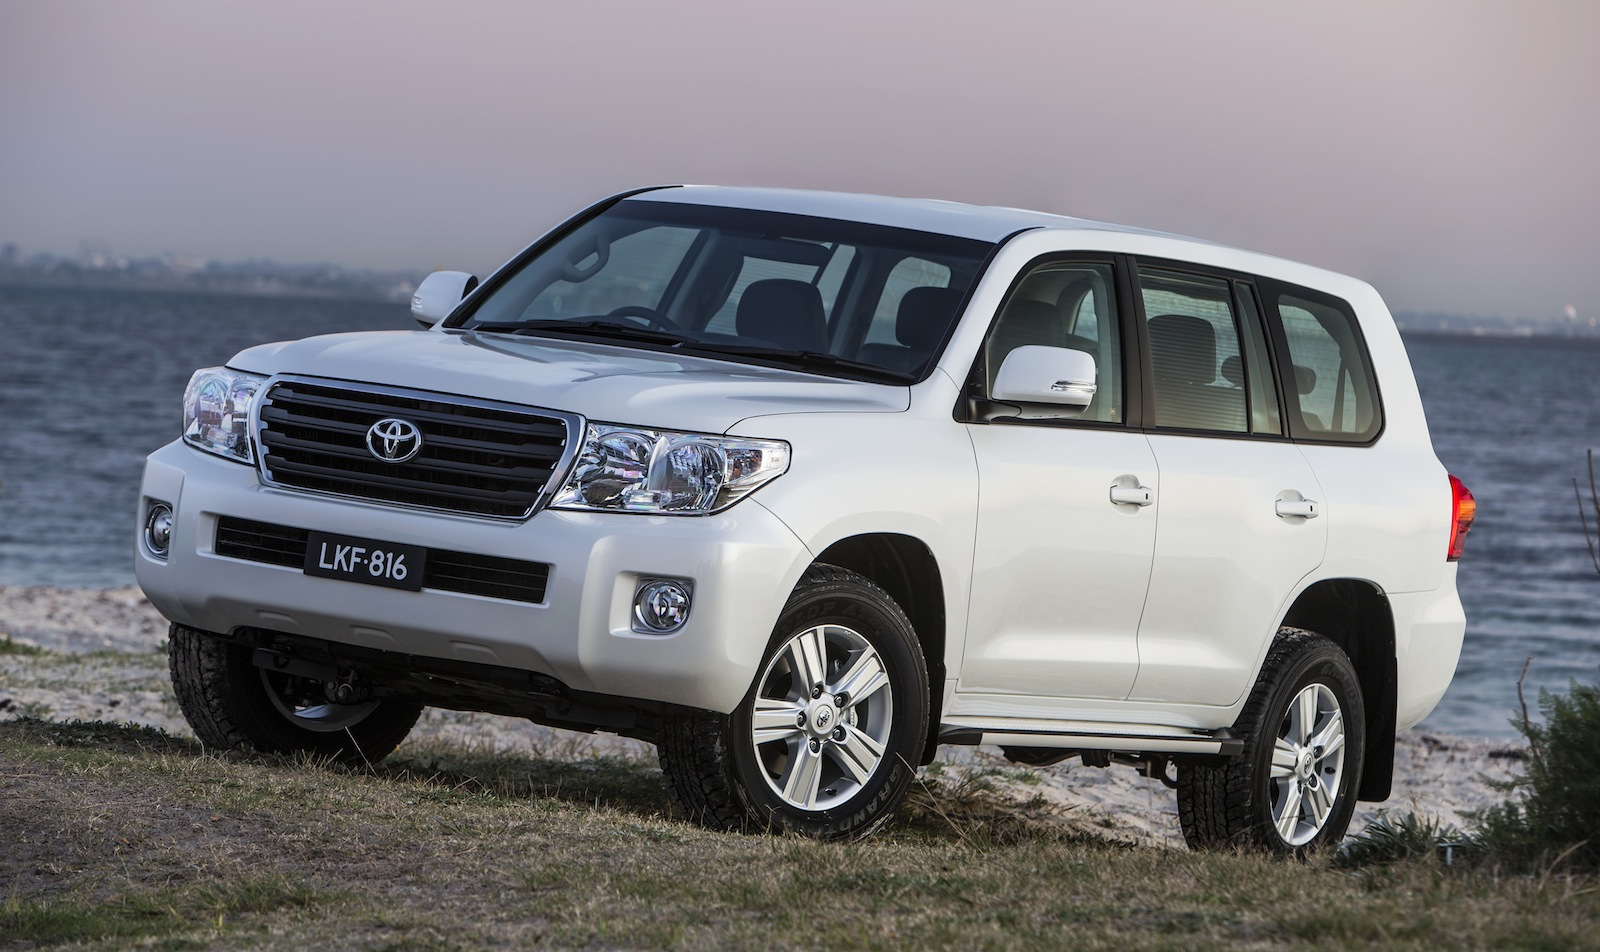 2013 toyota land cruiser 200 pictures information and specs auto. Black Bedroom Furniture Sets. Home Design Ideas